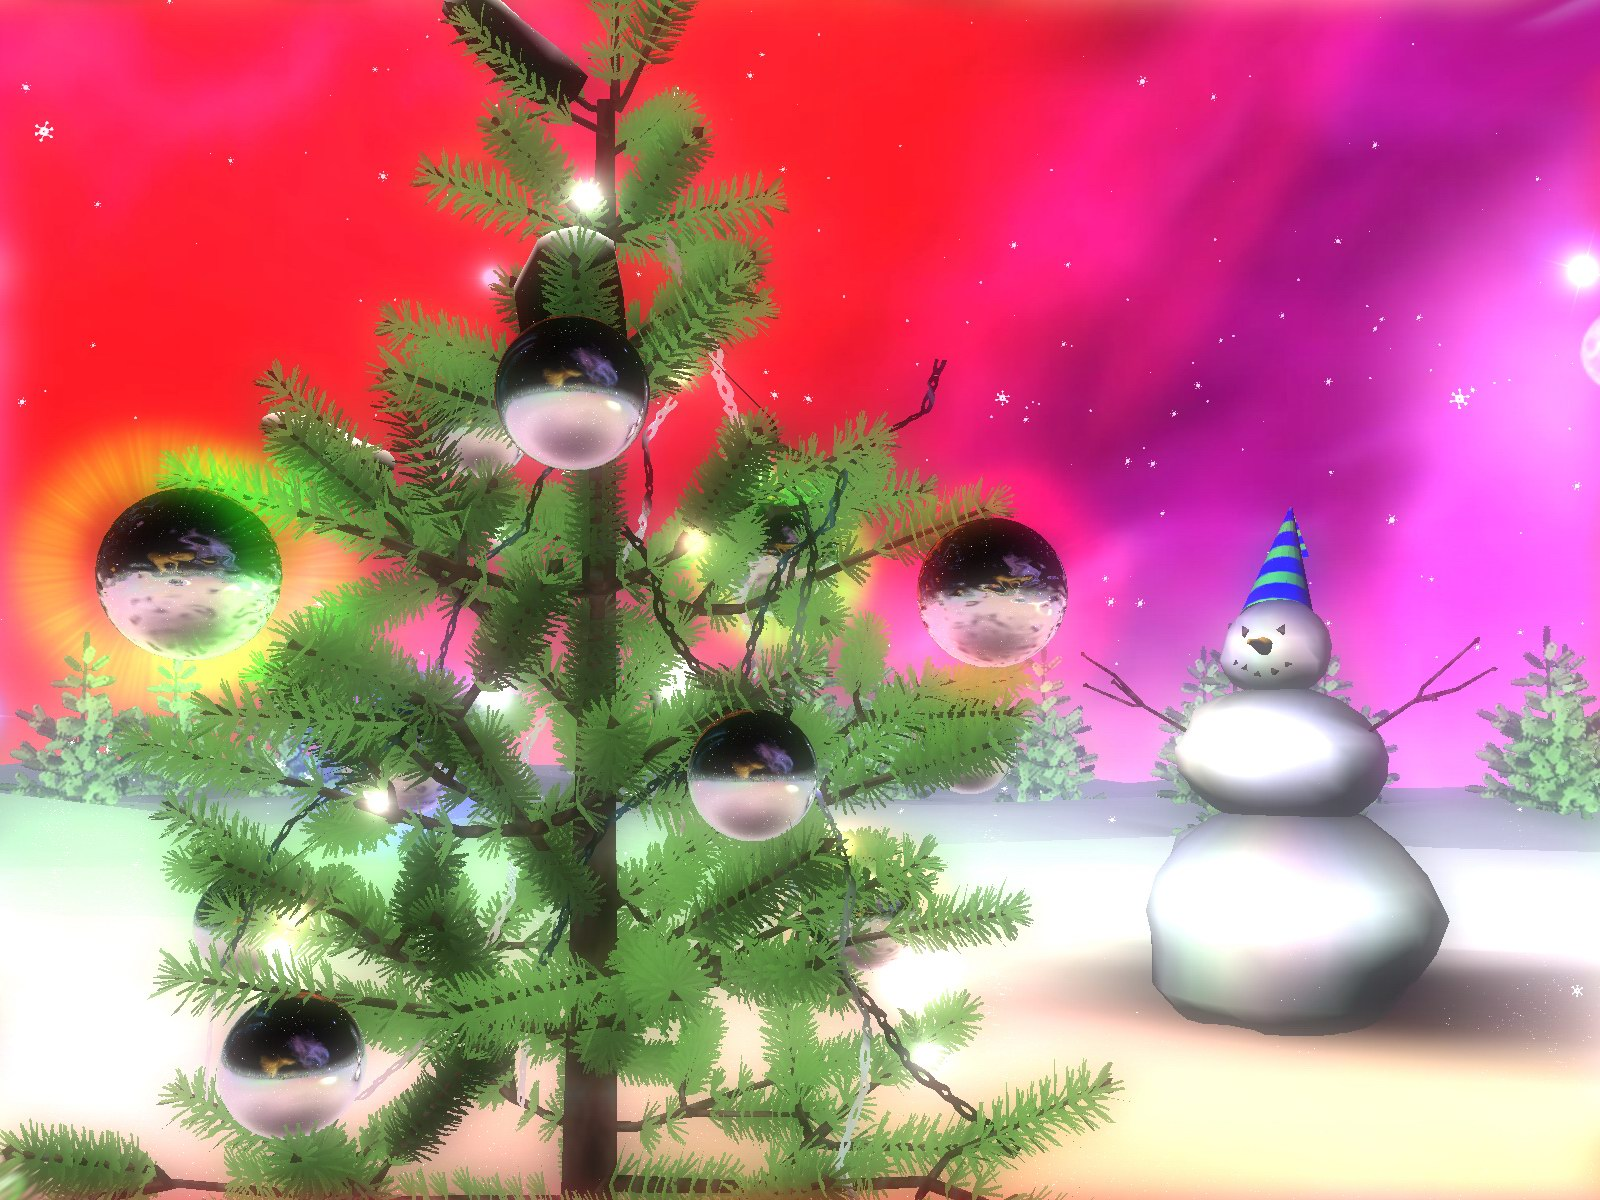 Imagine Christmas on the other planets! Let's see what's really happening there!